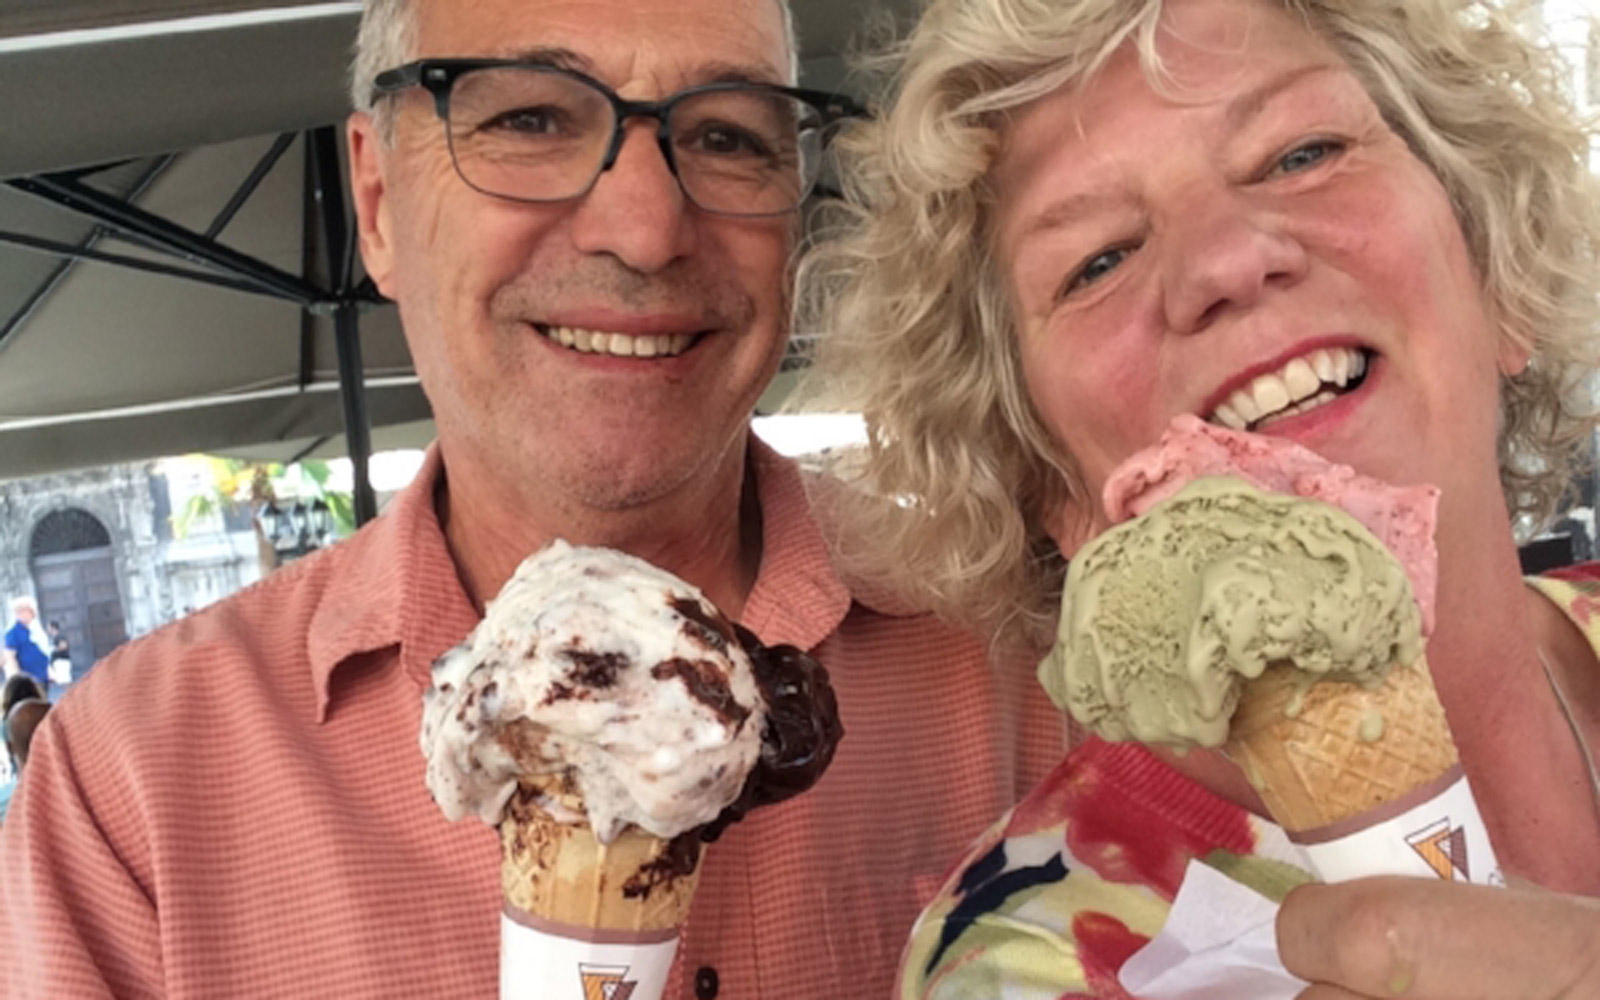 Michael and Debbie Campbell eating gelato